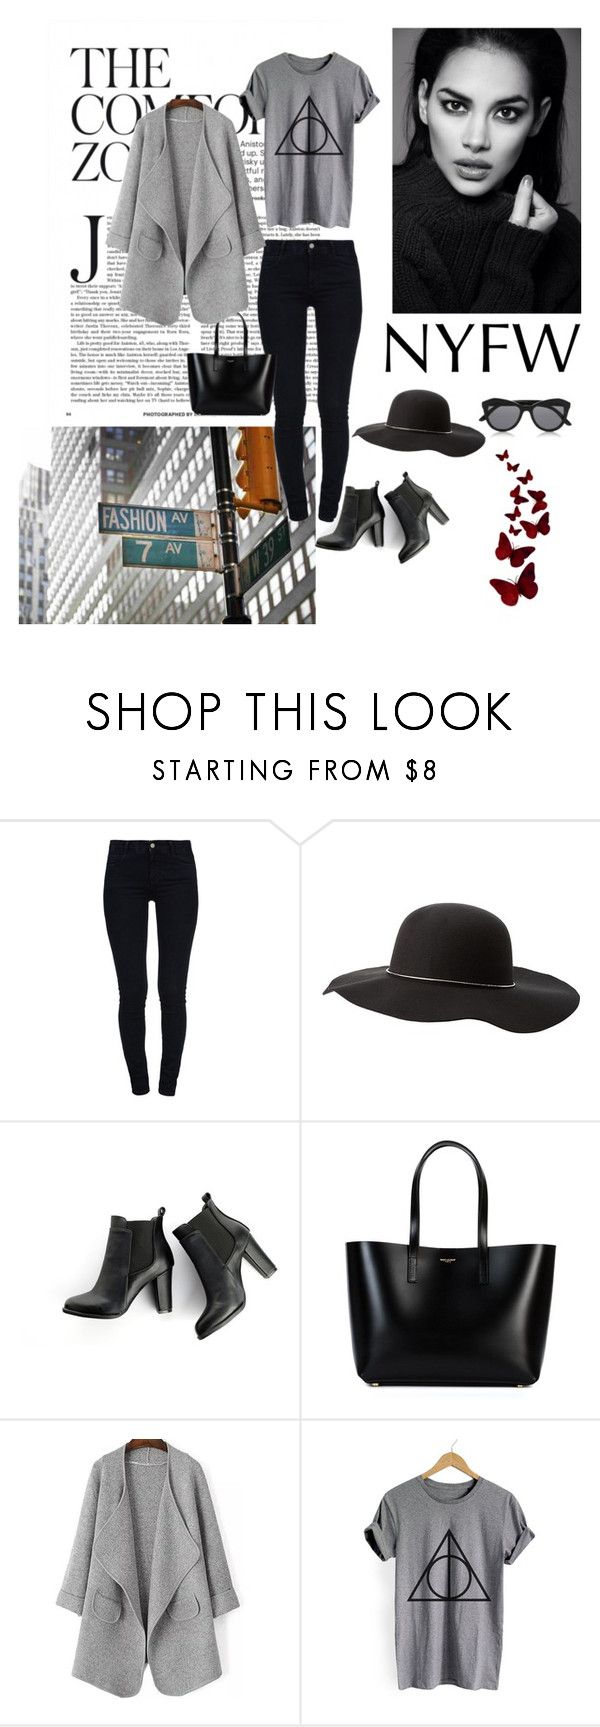 """""""NYFW Contest"""" by astridtos ❤ liked on Polyvore featuring STELLA McCARTNEY, Charlotte Russe, SWEET MANGO and Yves Saint Laurent"""